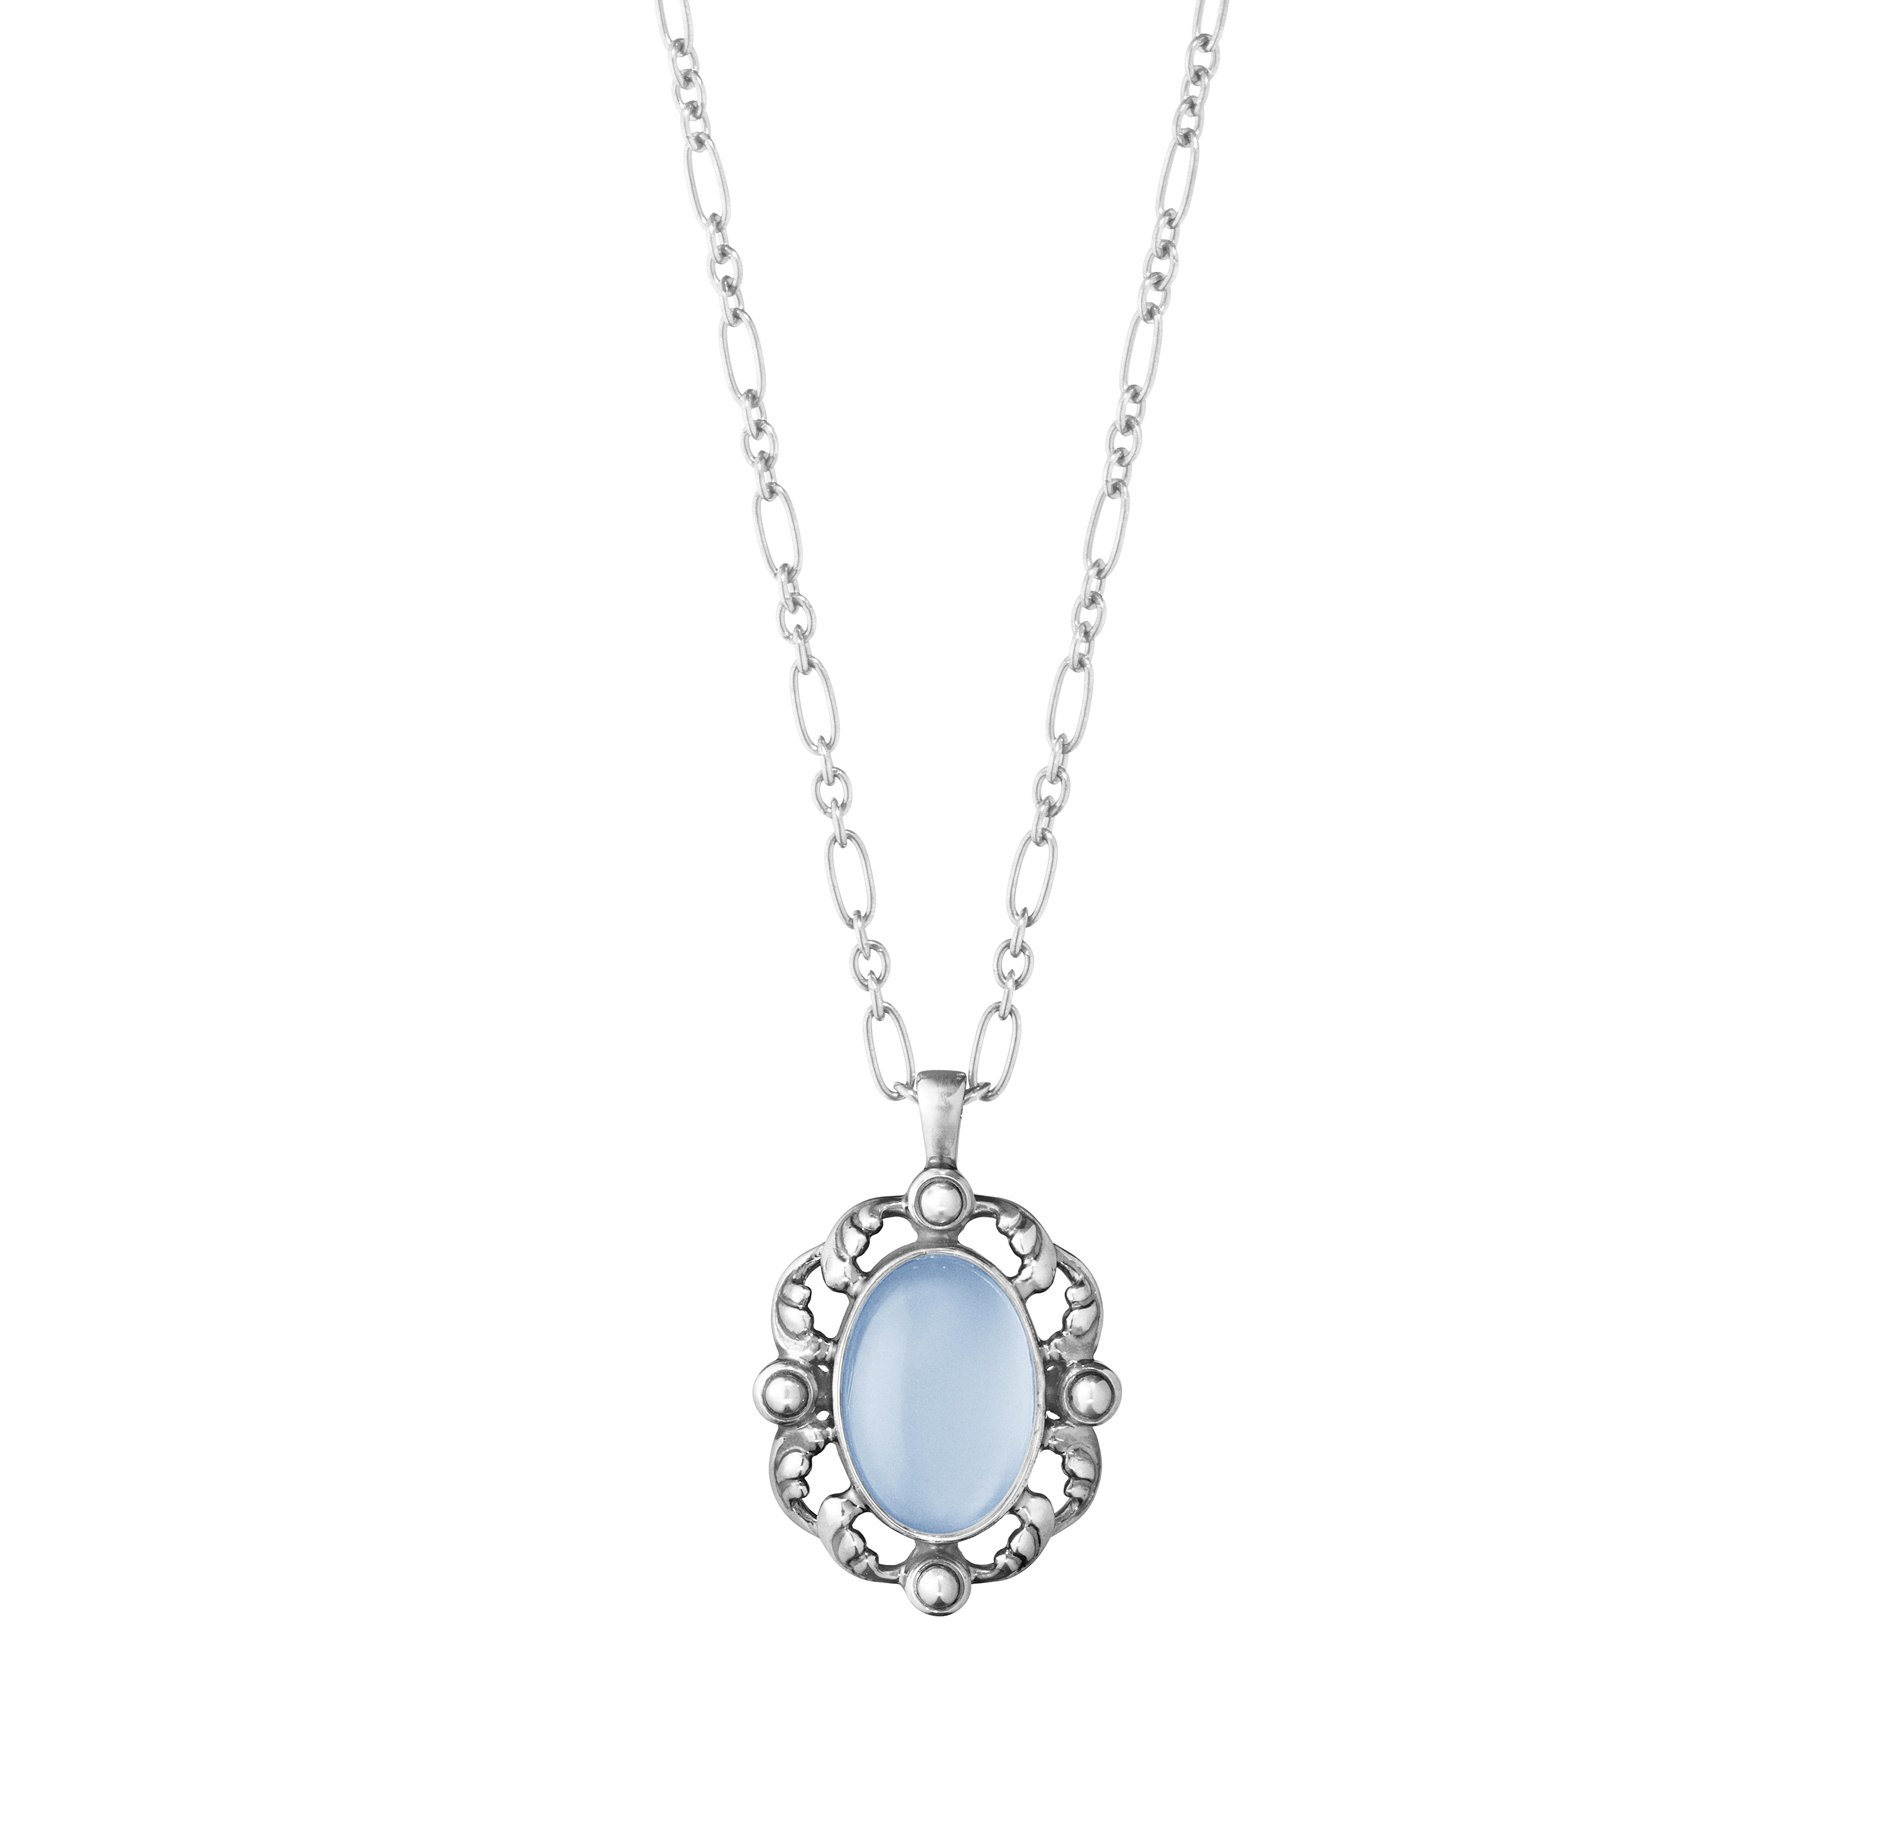 georg jensen heritage 2018 blue chalcedony and silver pendant